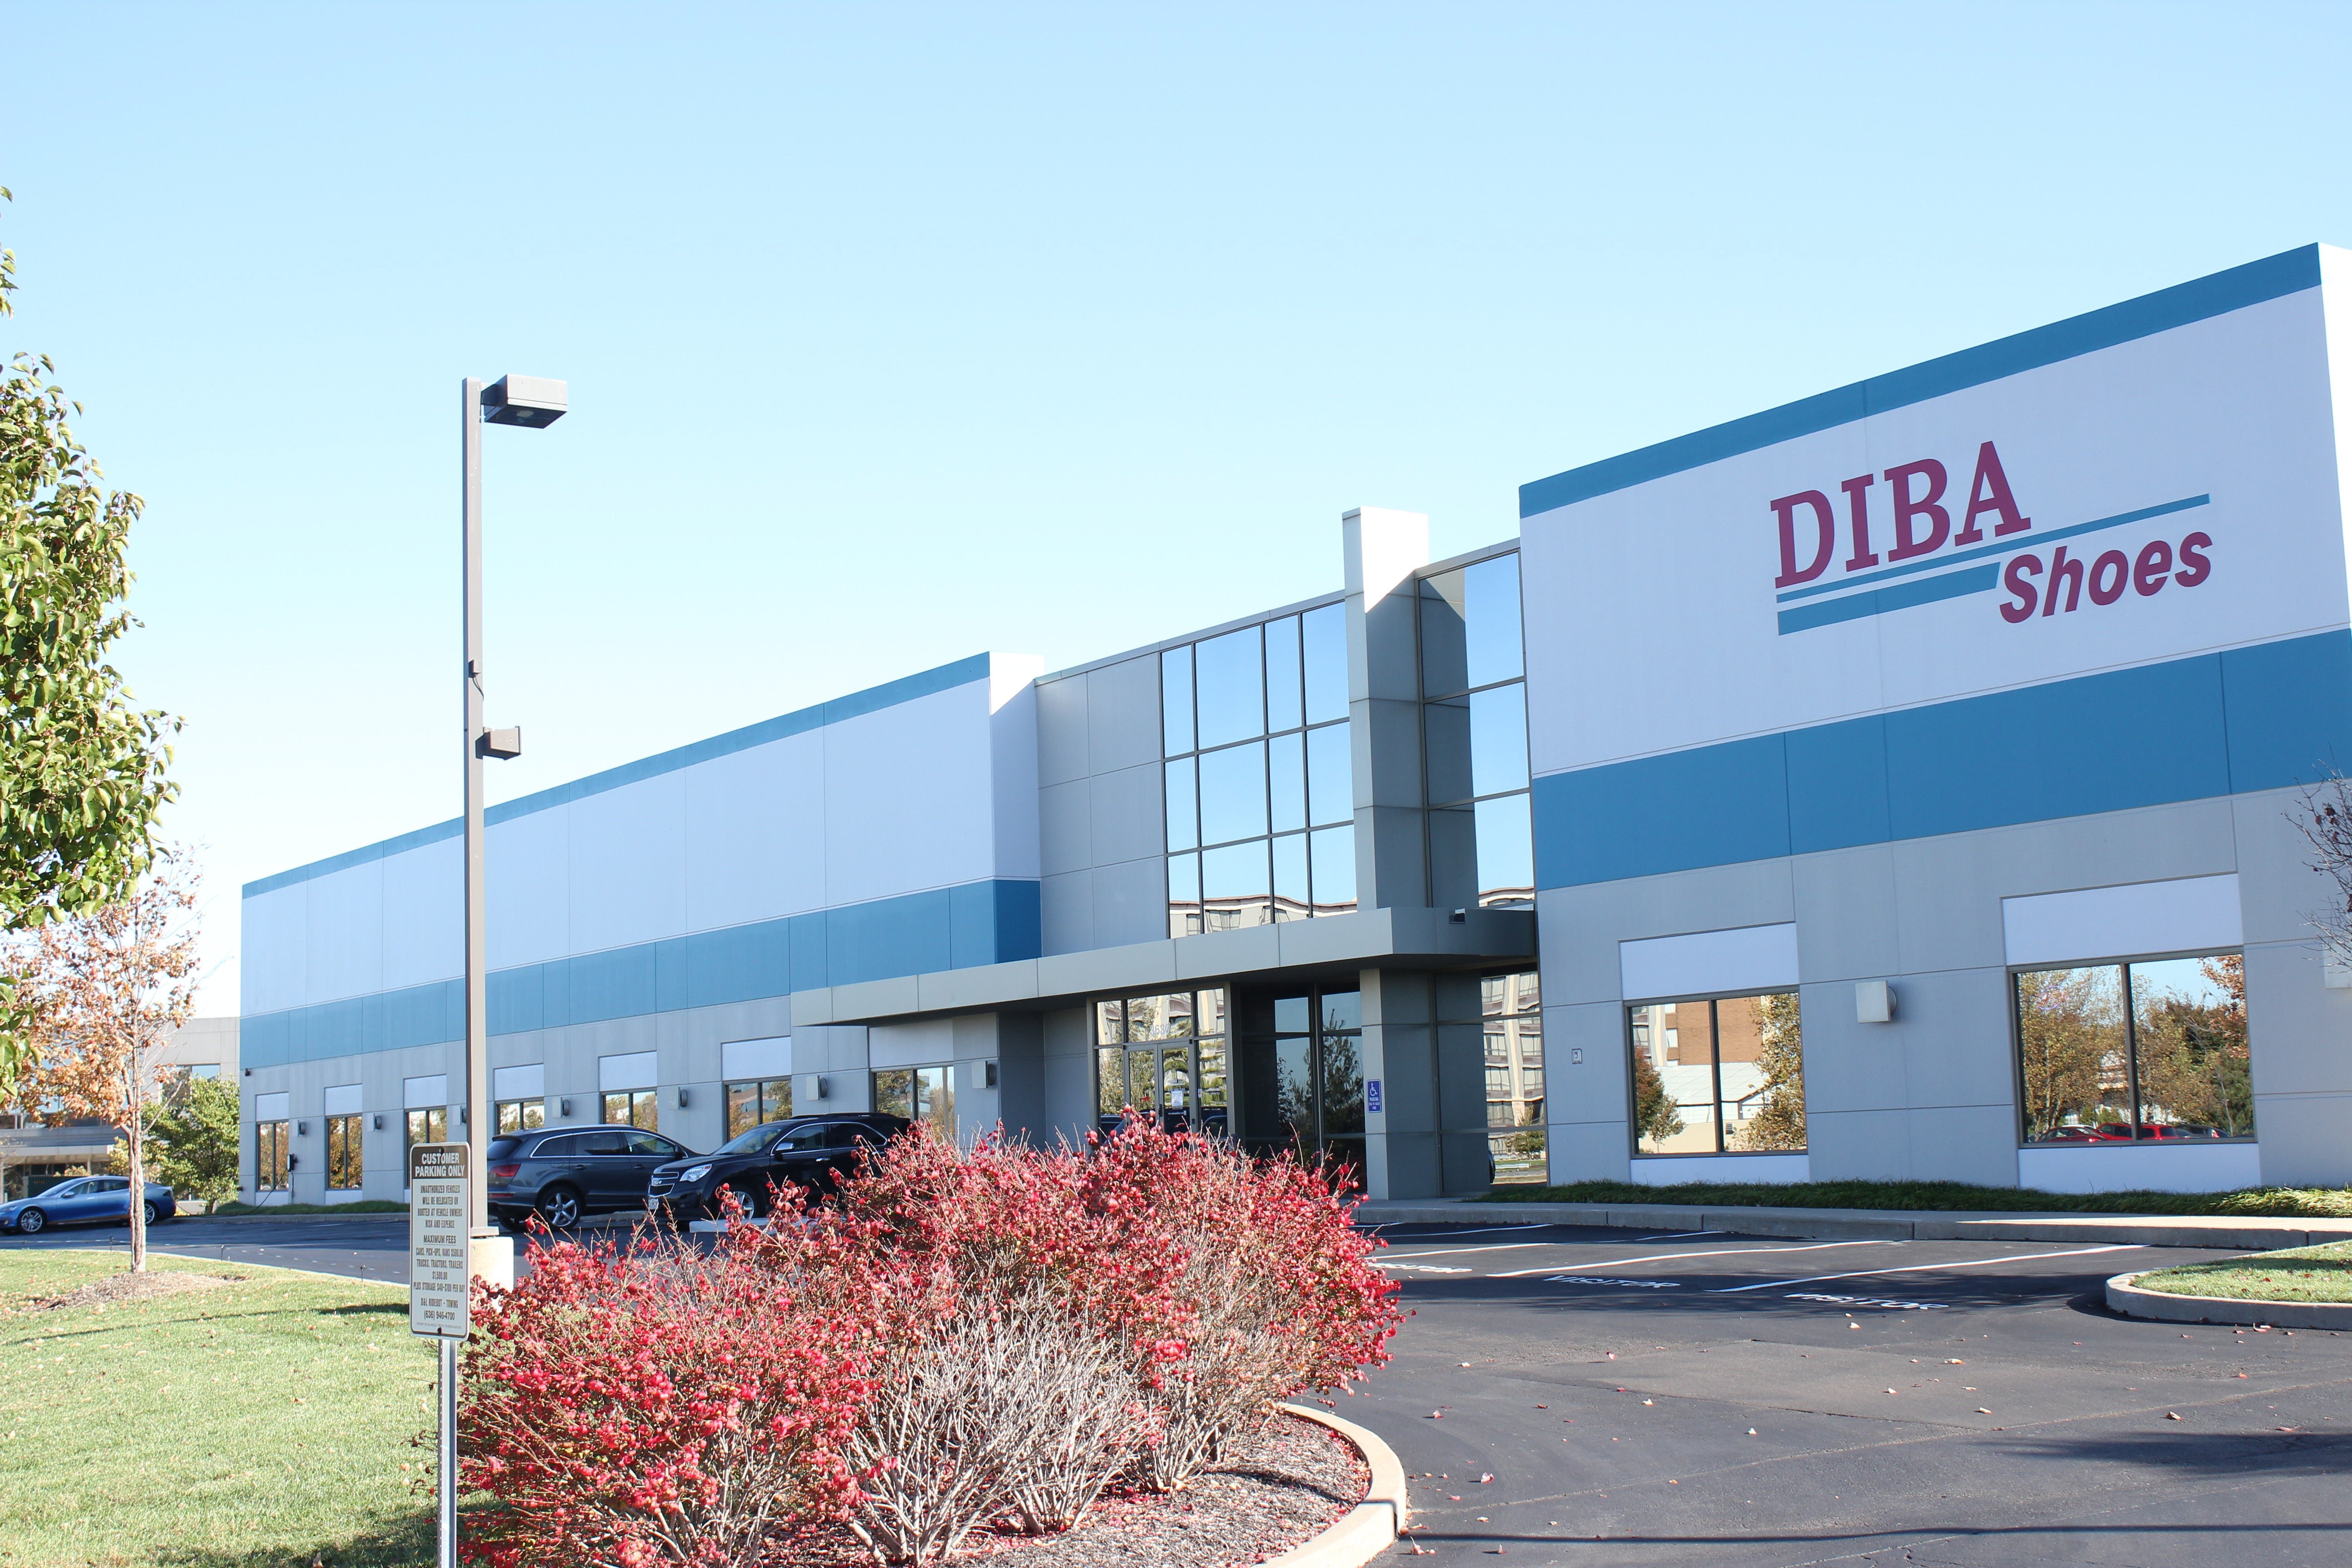 Diba Shoes Outlet store building